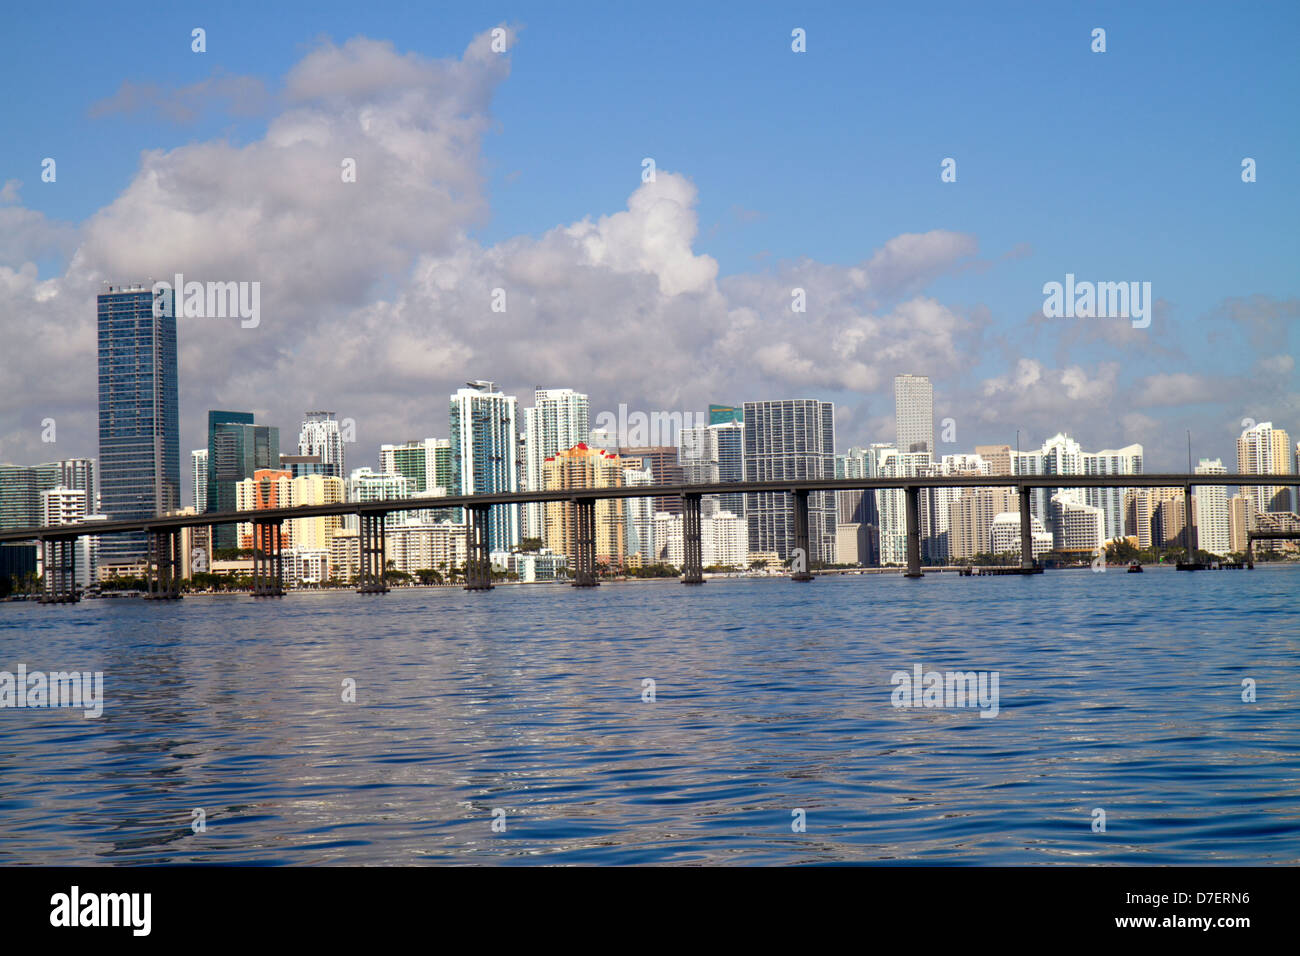 O Miami Miami Florida Biscayne Bay Rickenbacker Causeway Bridge Stadt